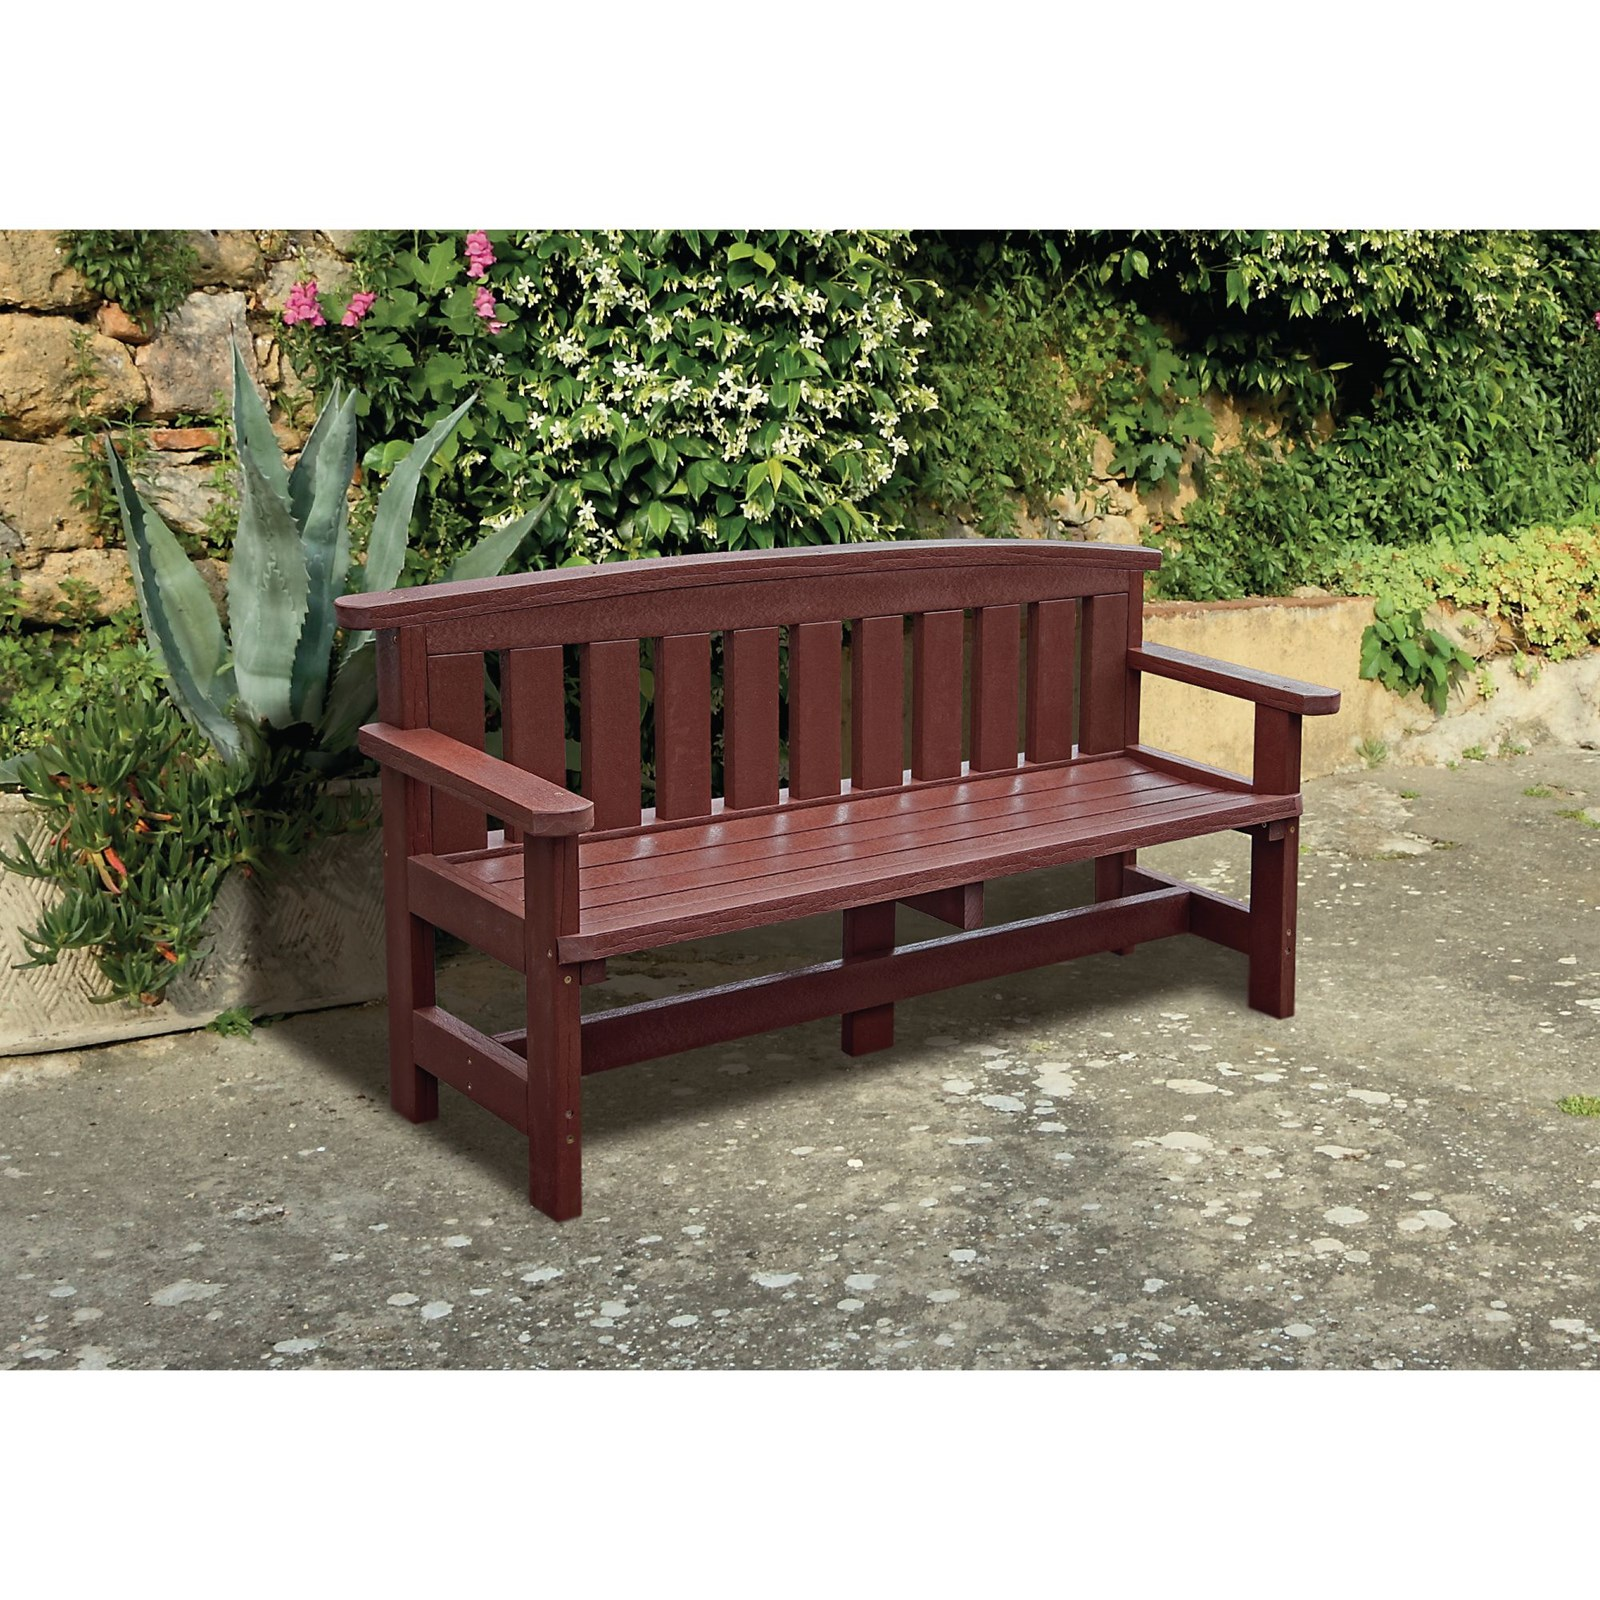 Traditional 3 Seater Bench